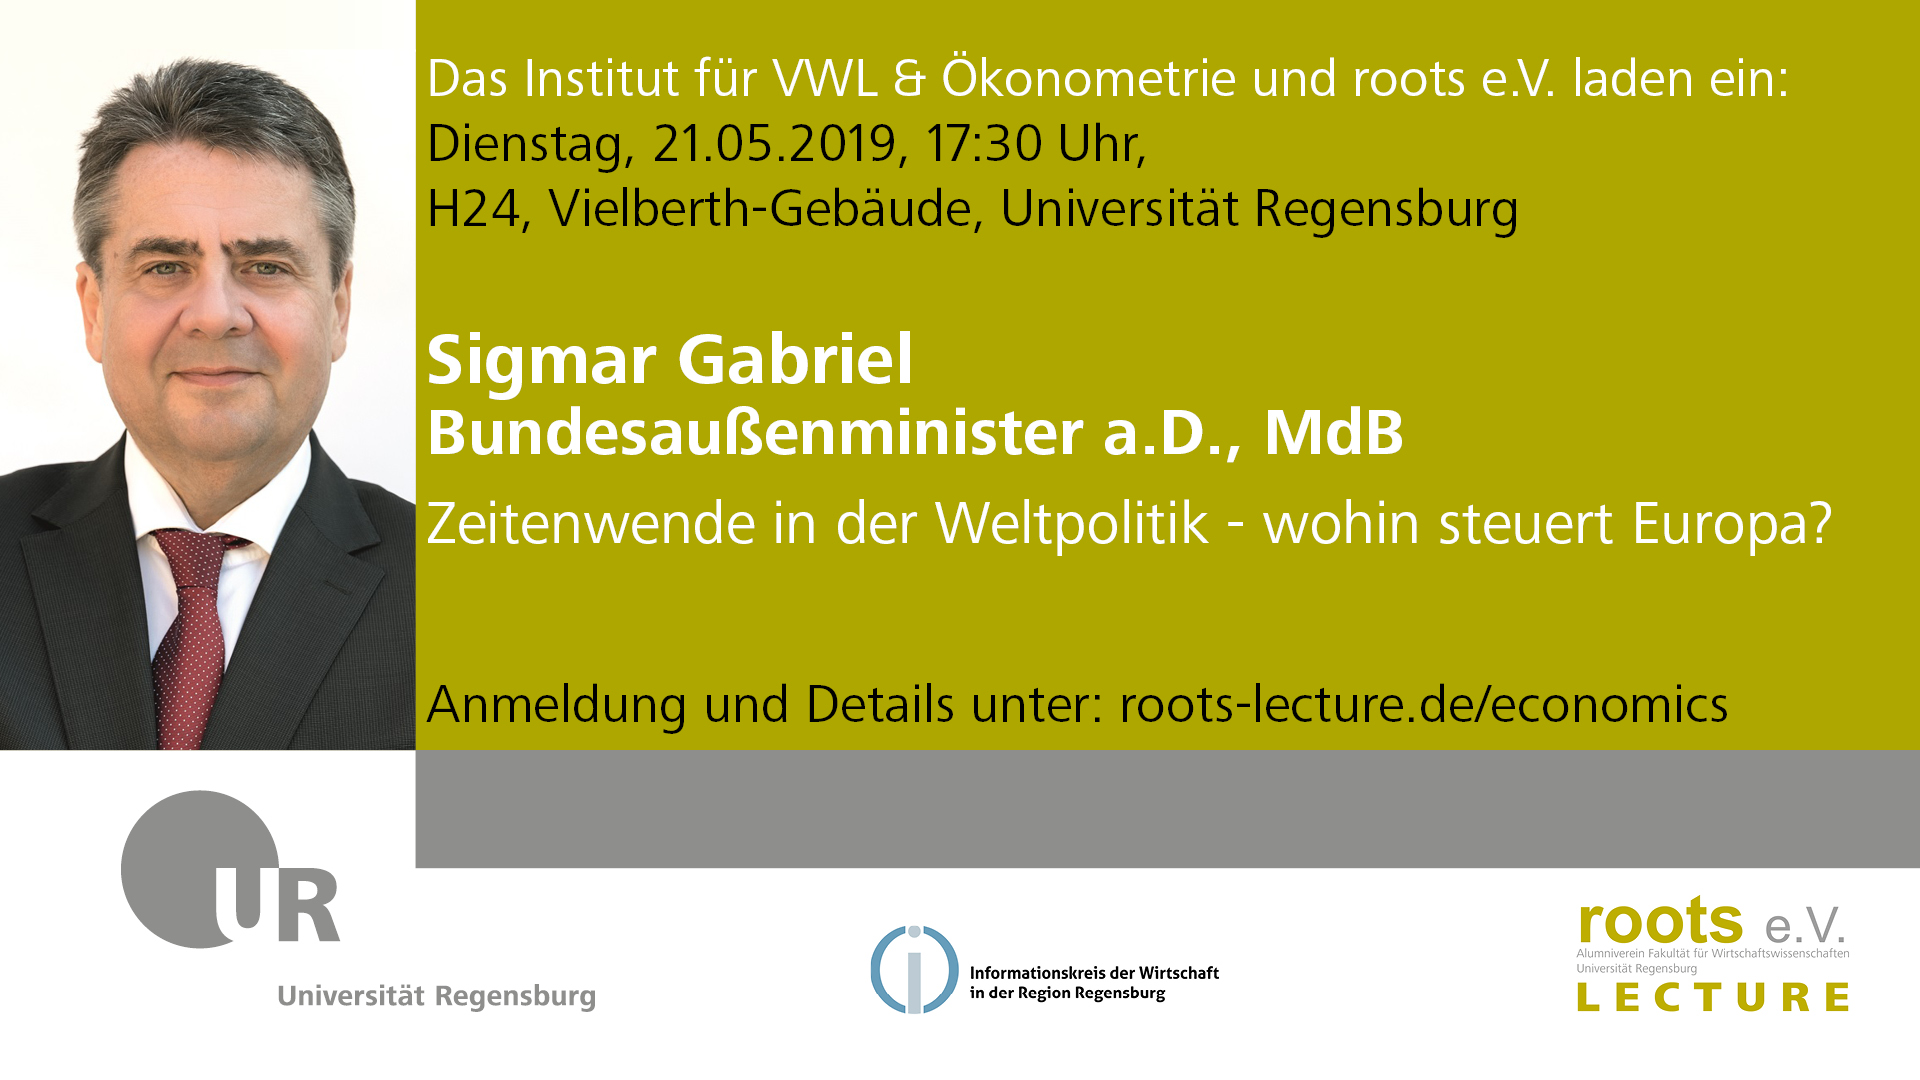 10th roots lecture in economics am Di, den 21.05.2019 mit Sigmar Gabriel, Bundesaußenminister a.D., MdB